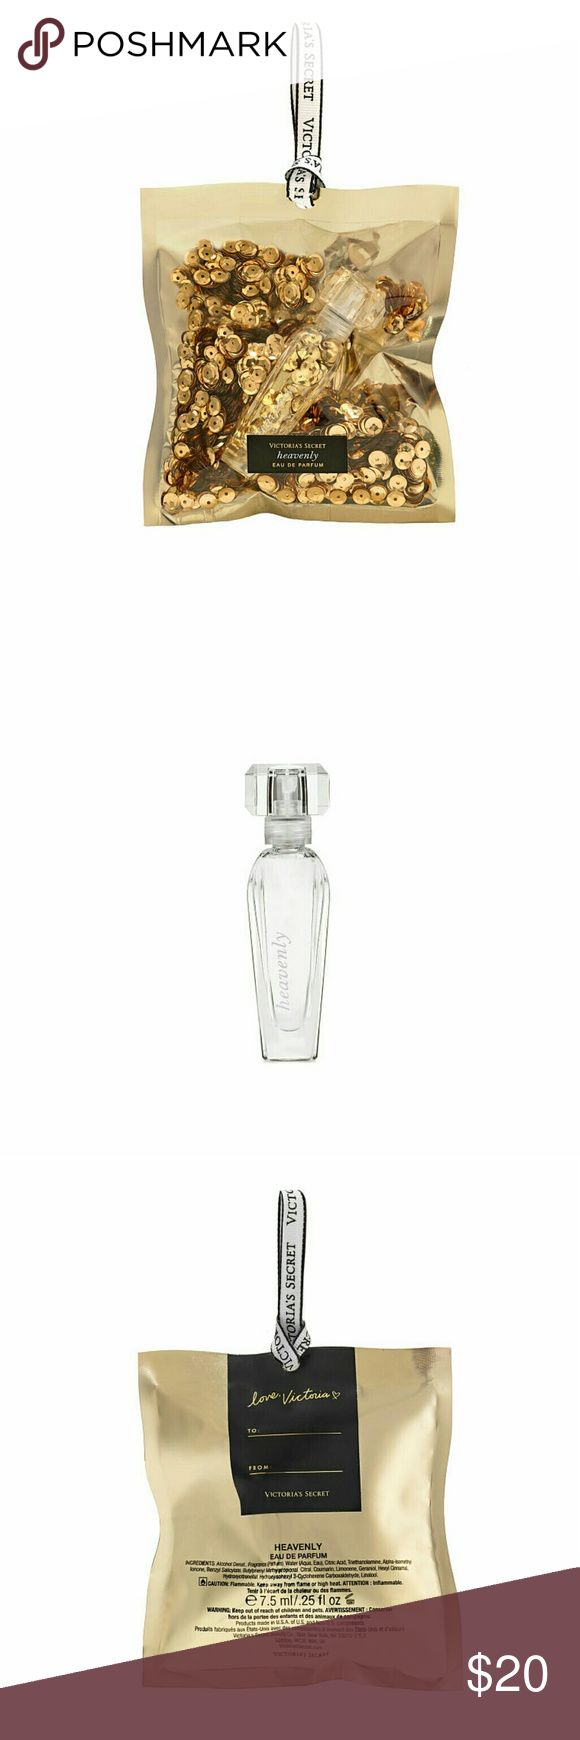 🎁NEW! Heavenly Ornament By Pink Victoria's Secret Product Details  The sexiest way to deck the halls: this dazzling ornament featuring a mini Heavenly eau de parfum.  Fragrance type:  Warm Notes: White Musk, Sandalwood, Vanilla and White Peony Domestic  Includes:  Mini Eau de Parfum: 7.5 ml/.25 fl. oz.  BF-368-766 PINK Victoria's Secret Accessories